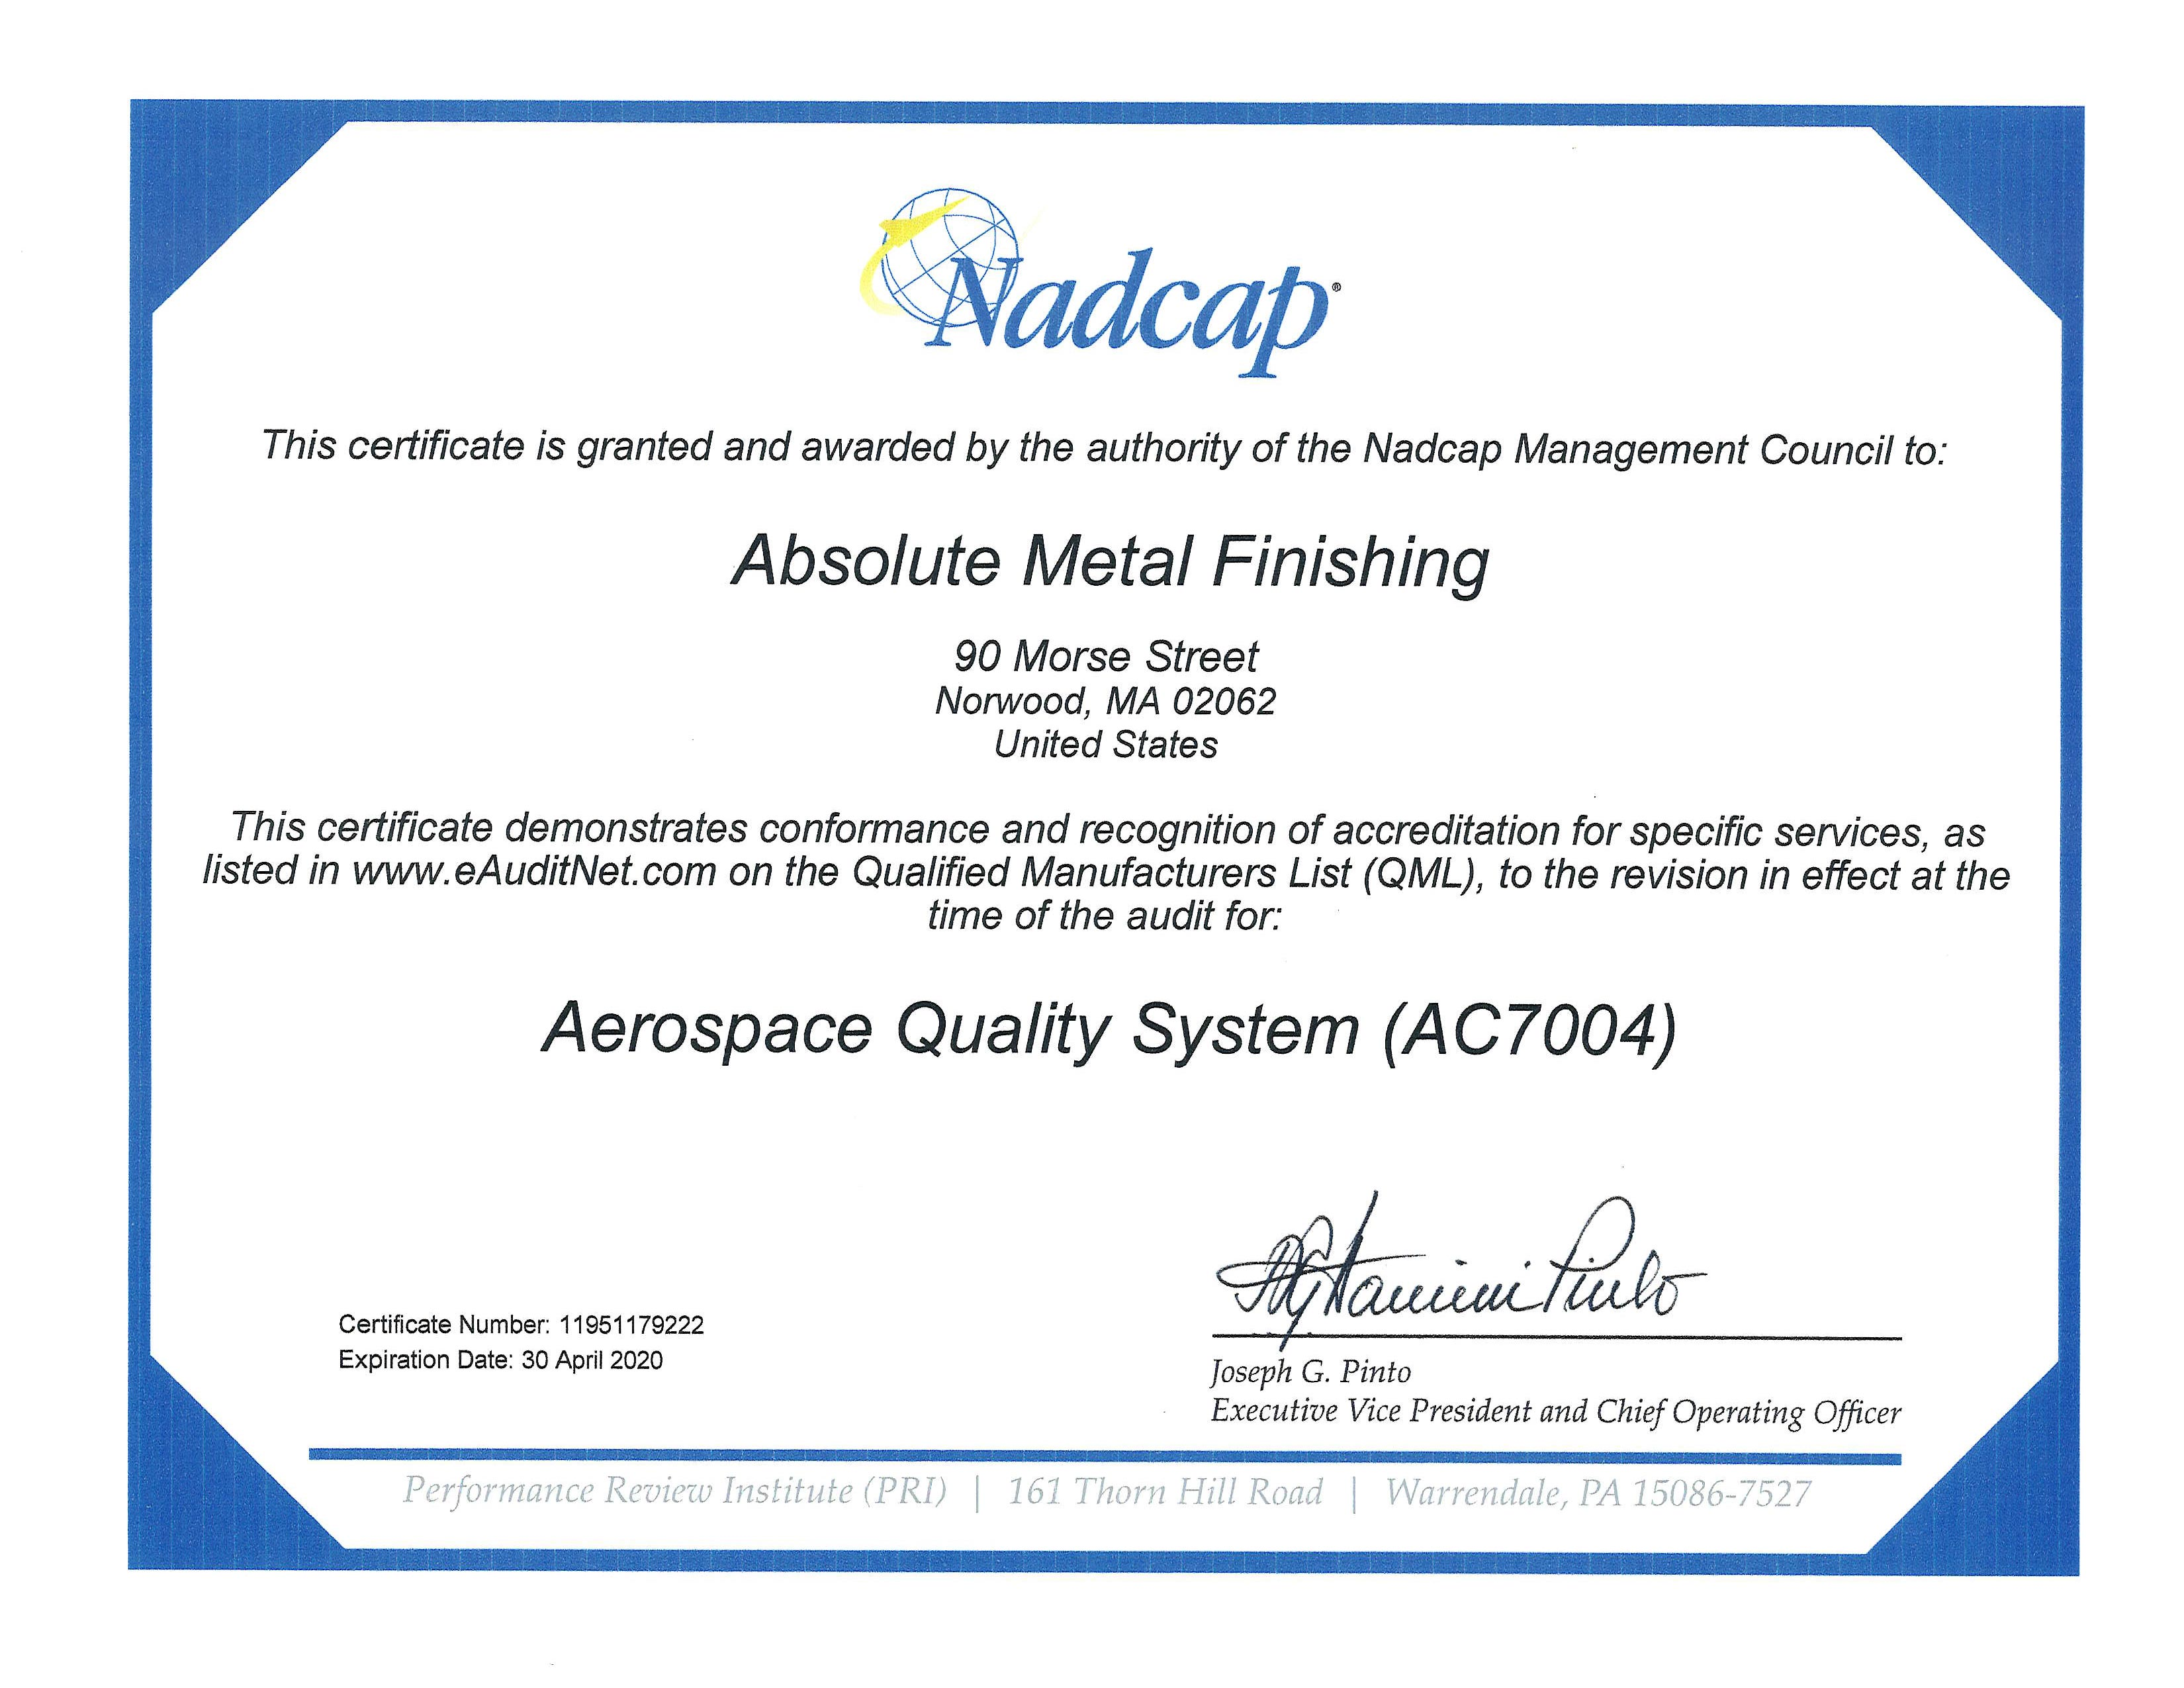 Isonadcap Scope And Certificates Absolute Metal Finishing